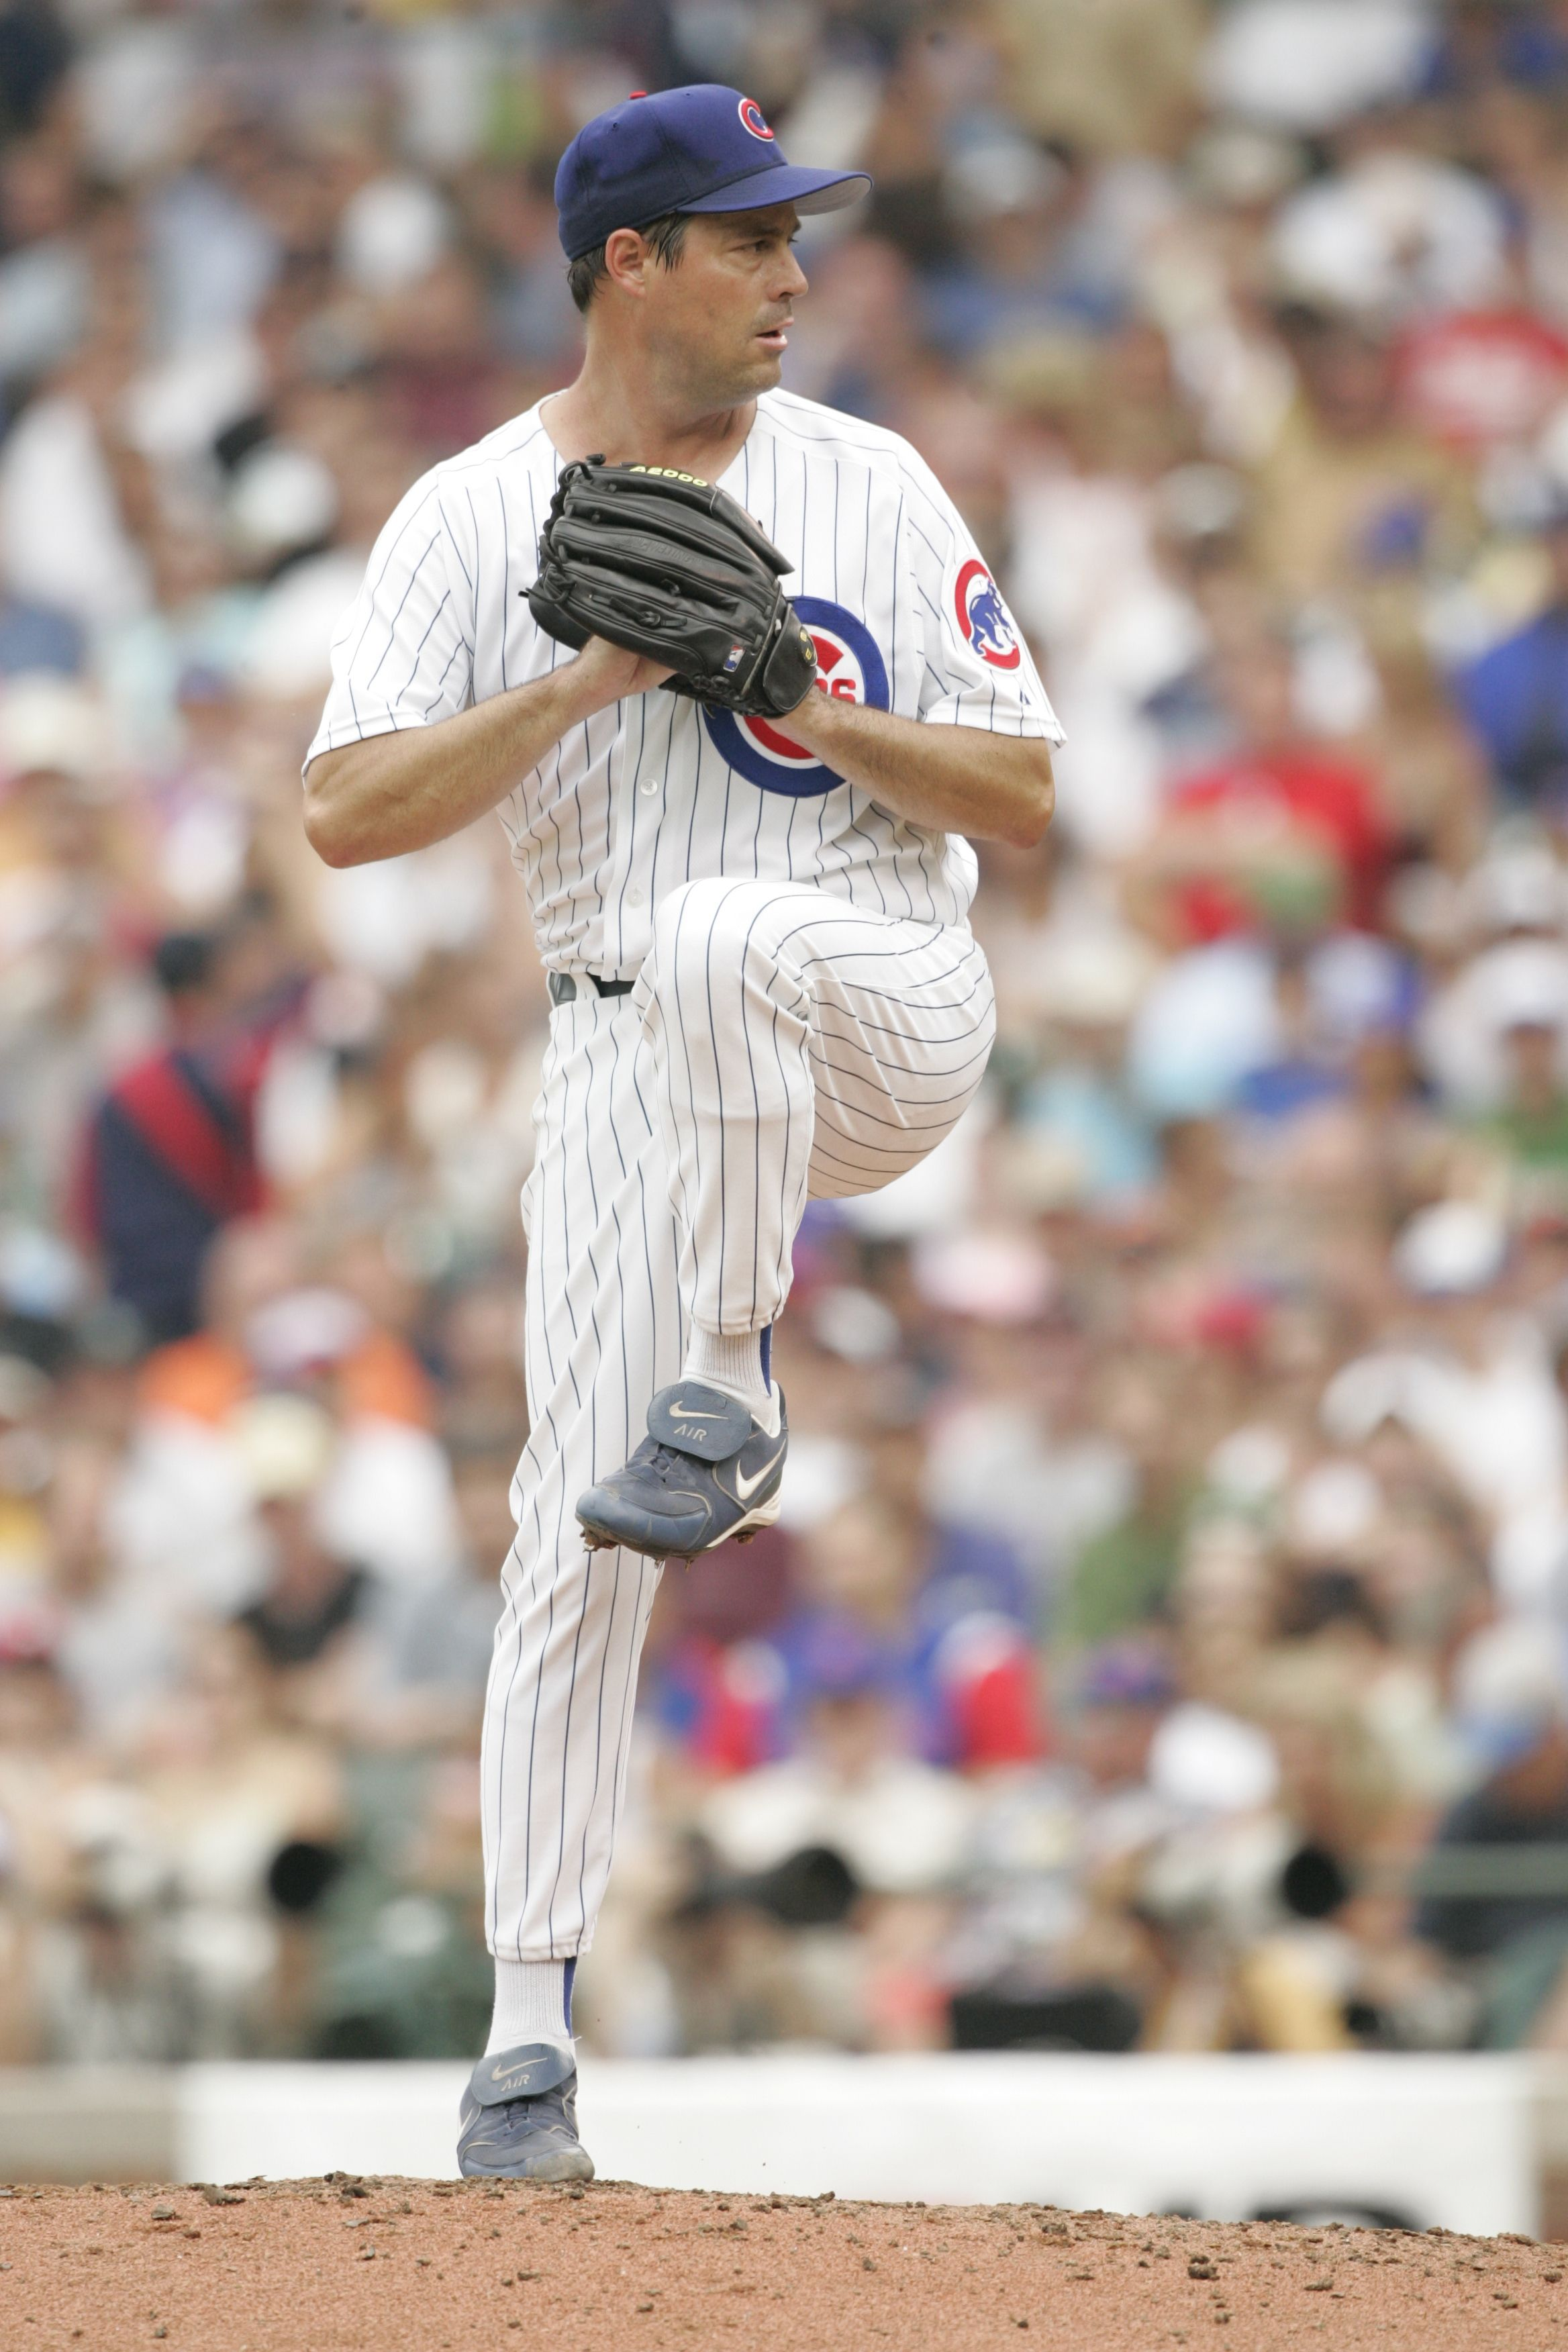 921951d825267c Greg Maddux: At a Garth Brooks Teammates for Kids meeting I convinced Greg  he needed to come back to the Cubs. The next week it was announced he was  back.